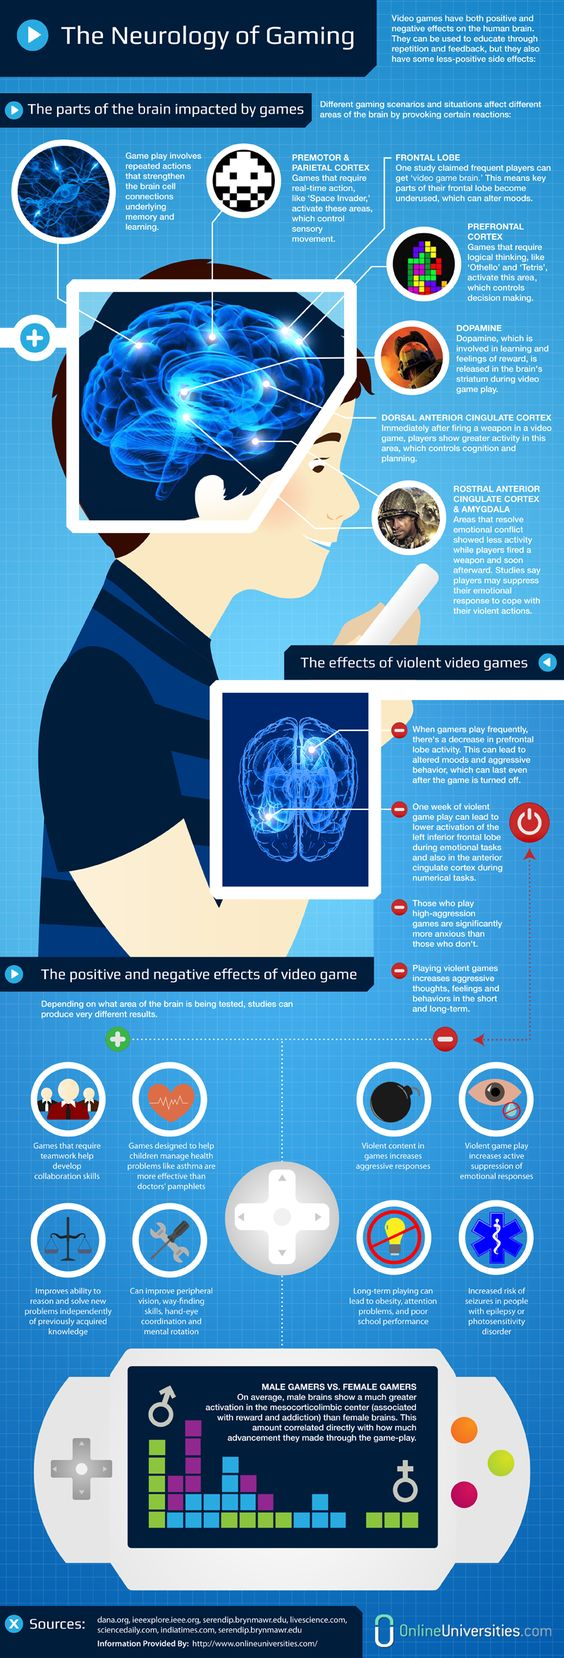 OnlineUniversities came up with this inforgraphic about what video games do to your brain - a lot of positive effects!